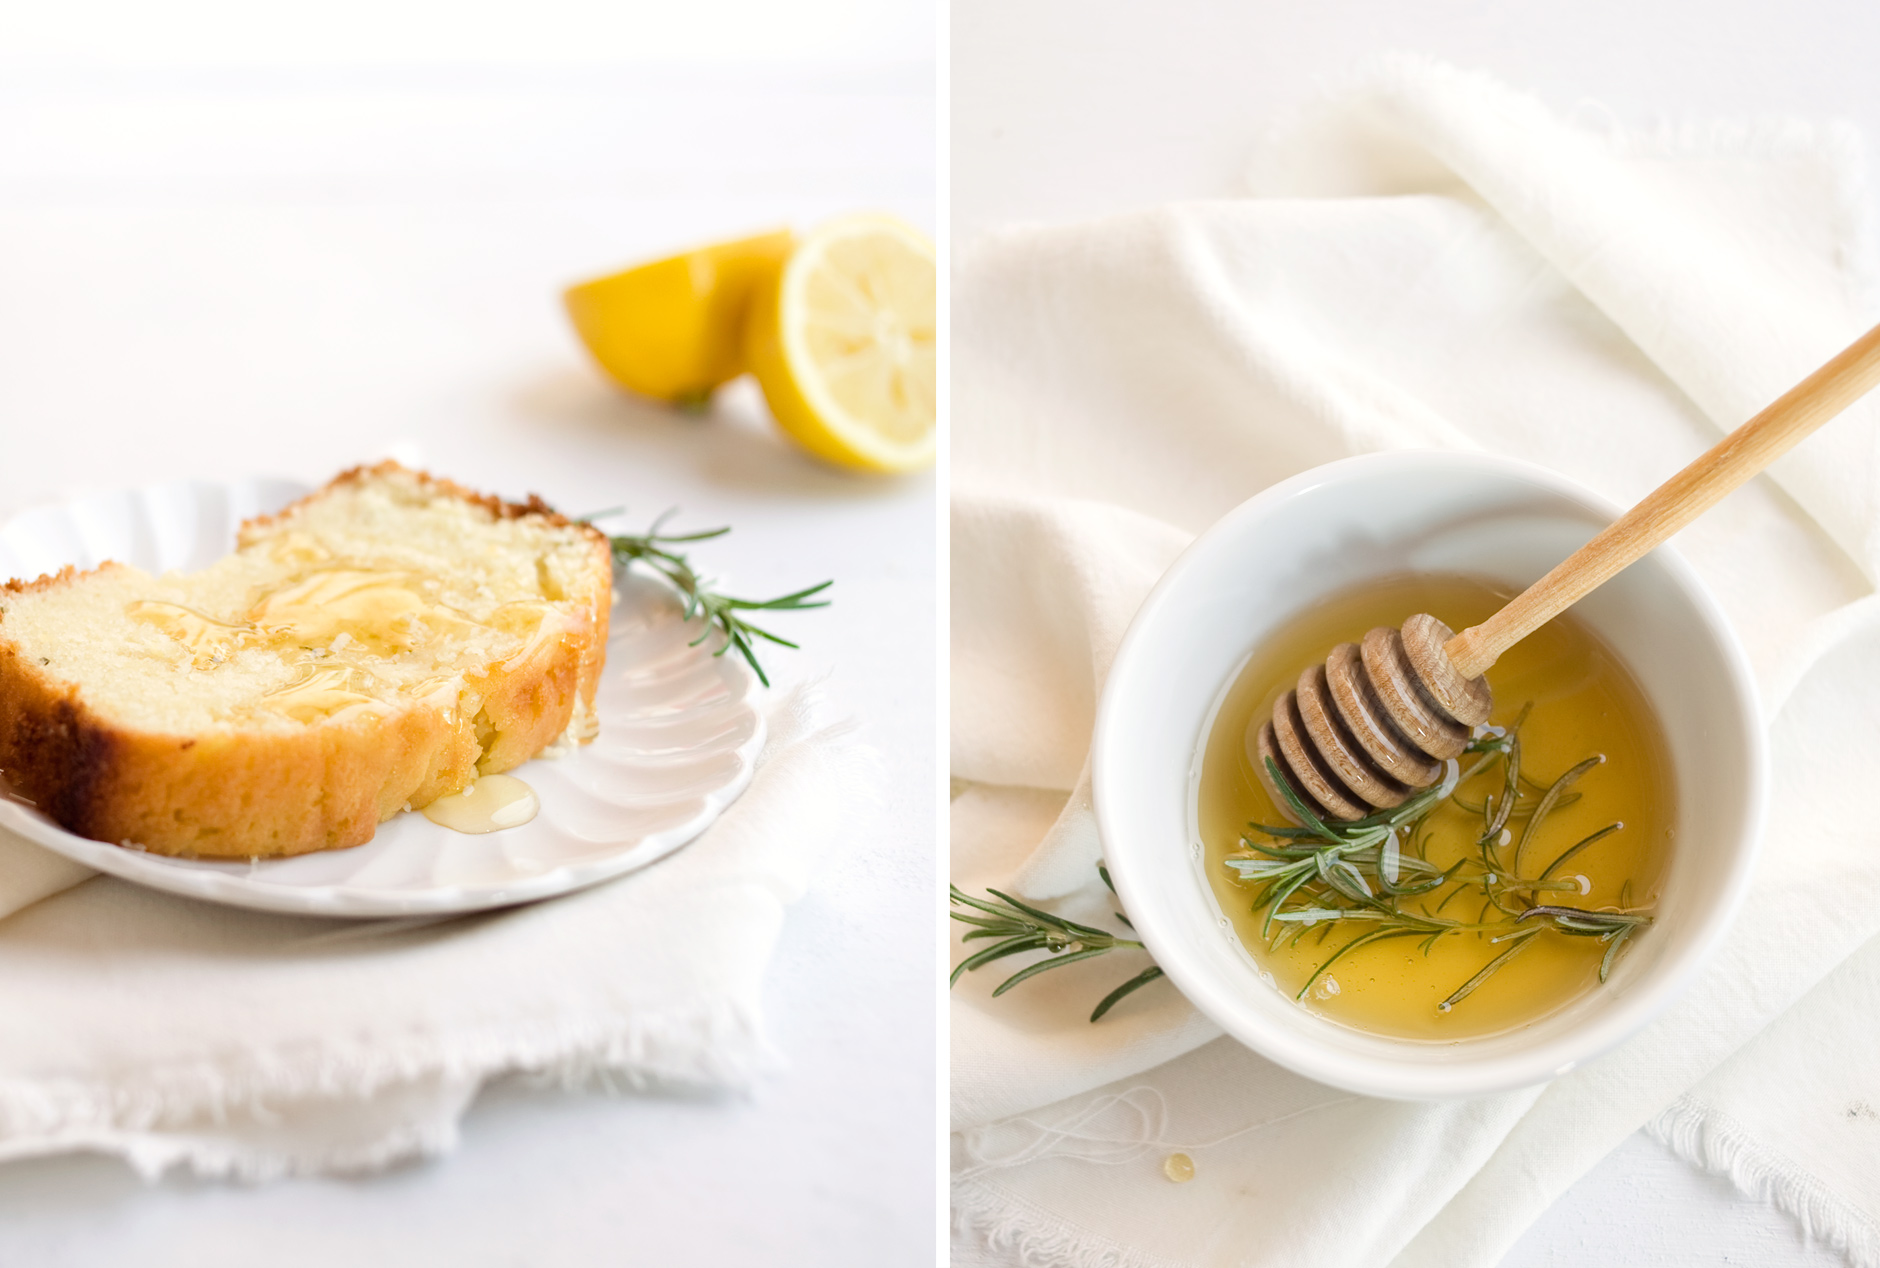 rosemary_buttermilk_food_photography_3.jpg